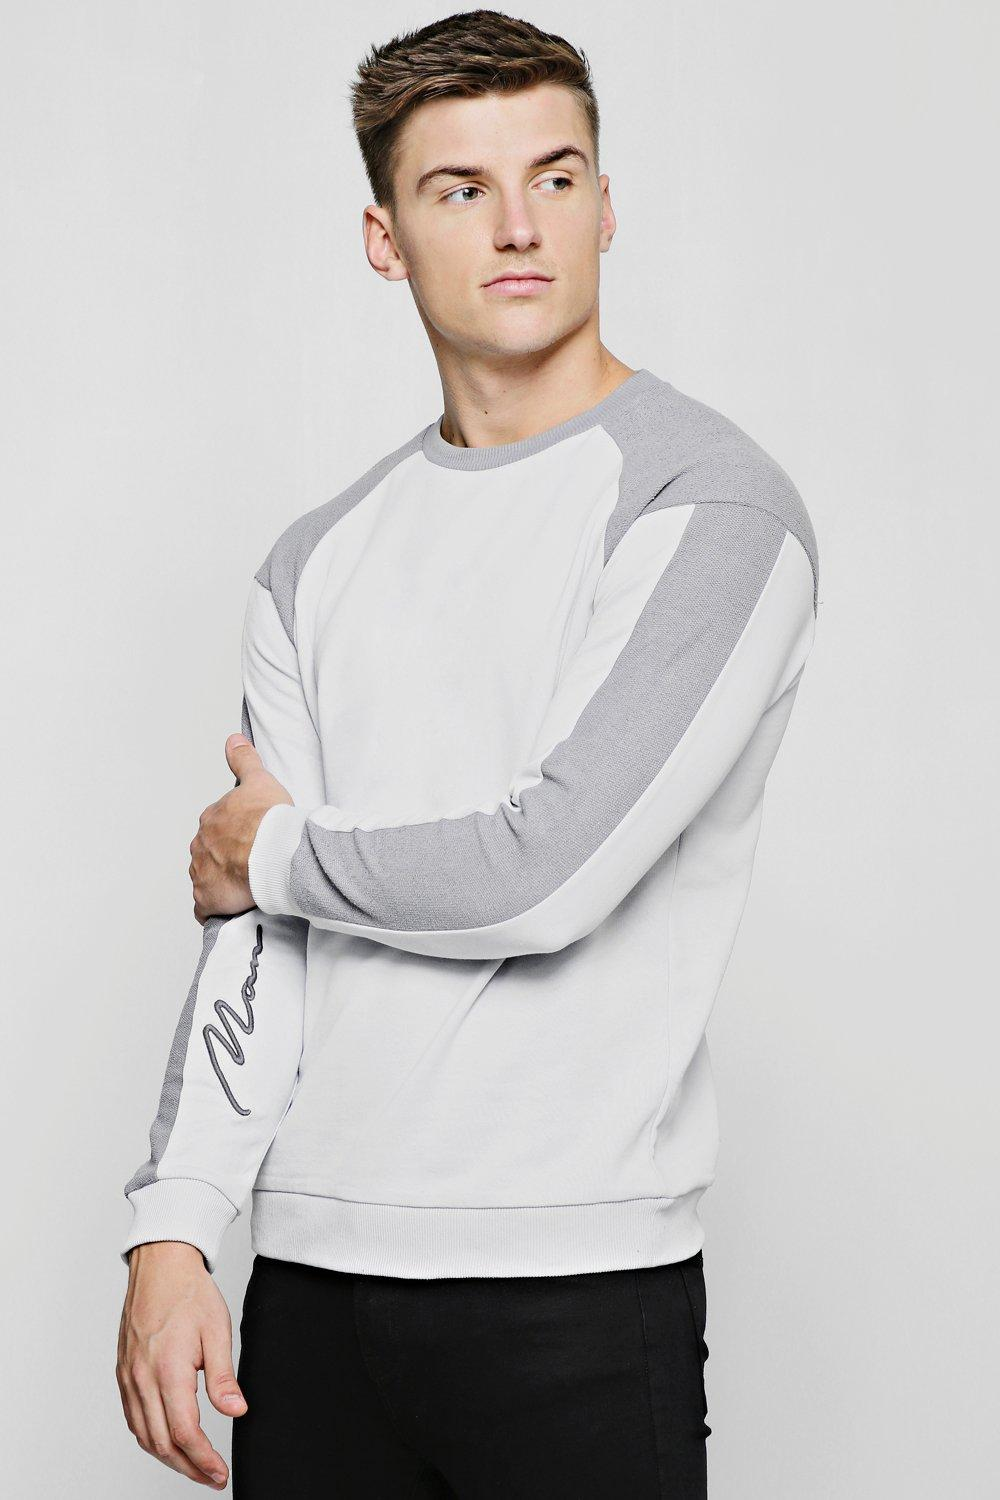 Contrast Sweater With MAN Signature Sleeve